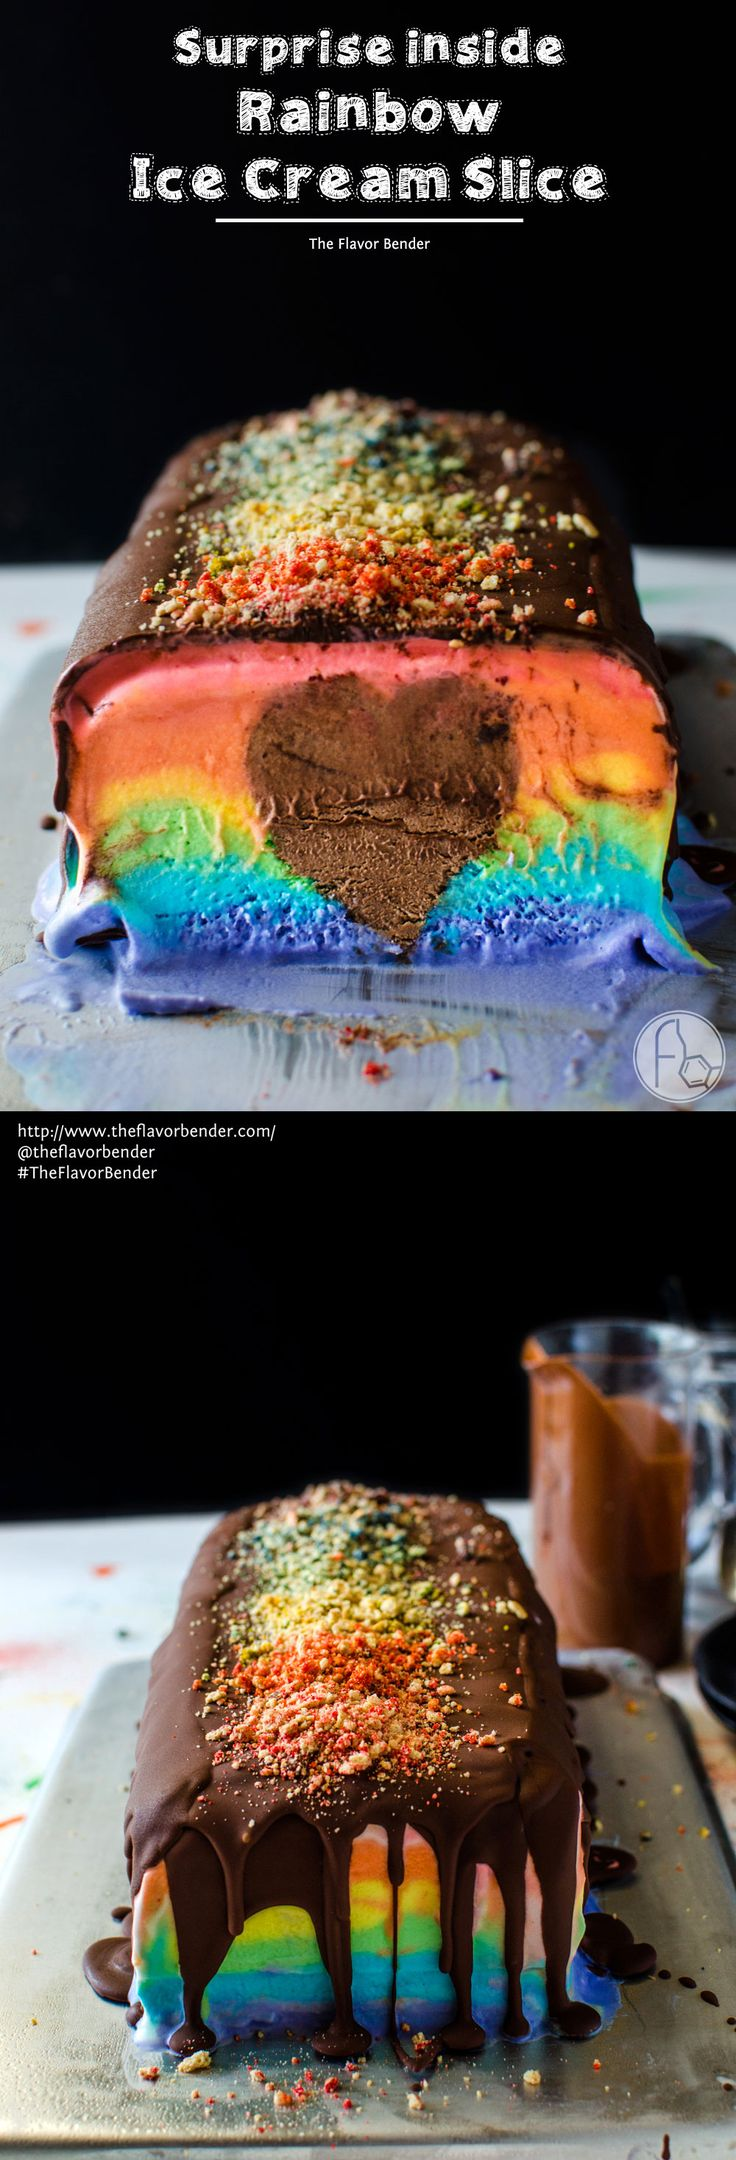 Surprise Inside Rainbow Ice Cream Slice - A deliciously creamy rainbow ice cream slice in bright rainbow colors with a rich, creamy, heart-shaped chocolate mousse center! A fabulous no bake Summer dessert to share with all the people that we love in our lives. SAVE to repin. CLICK to get RECIPE + VIDEO